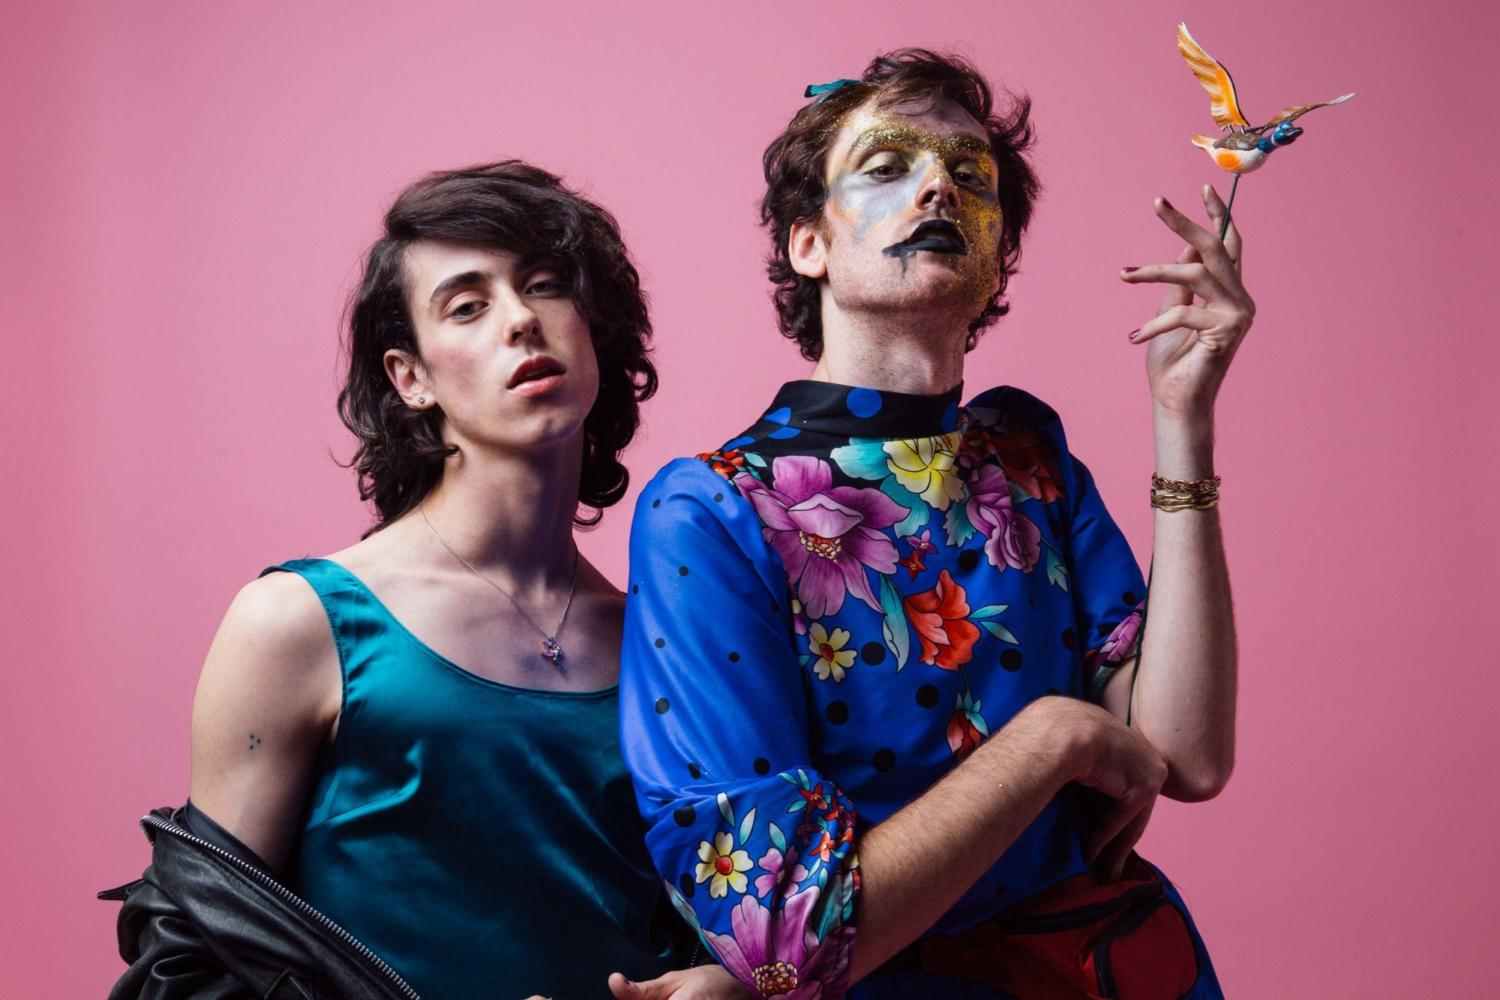 Stream PWR BTTM's new album 'Pageant' in full